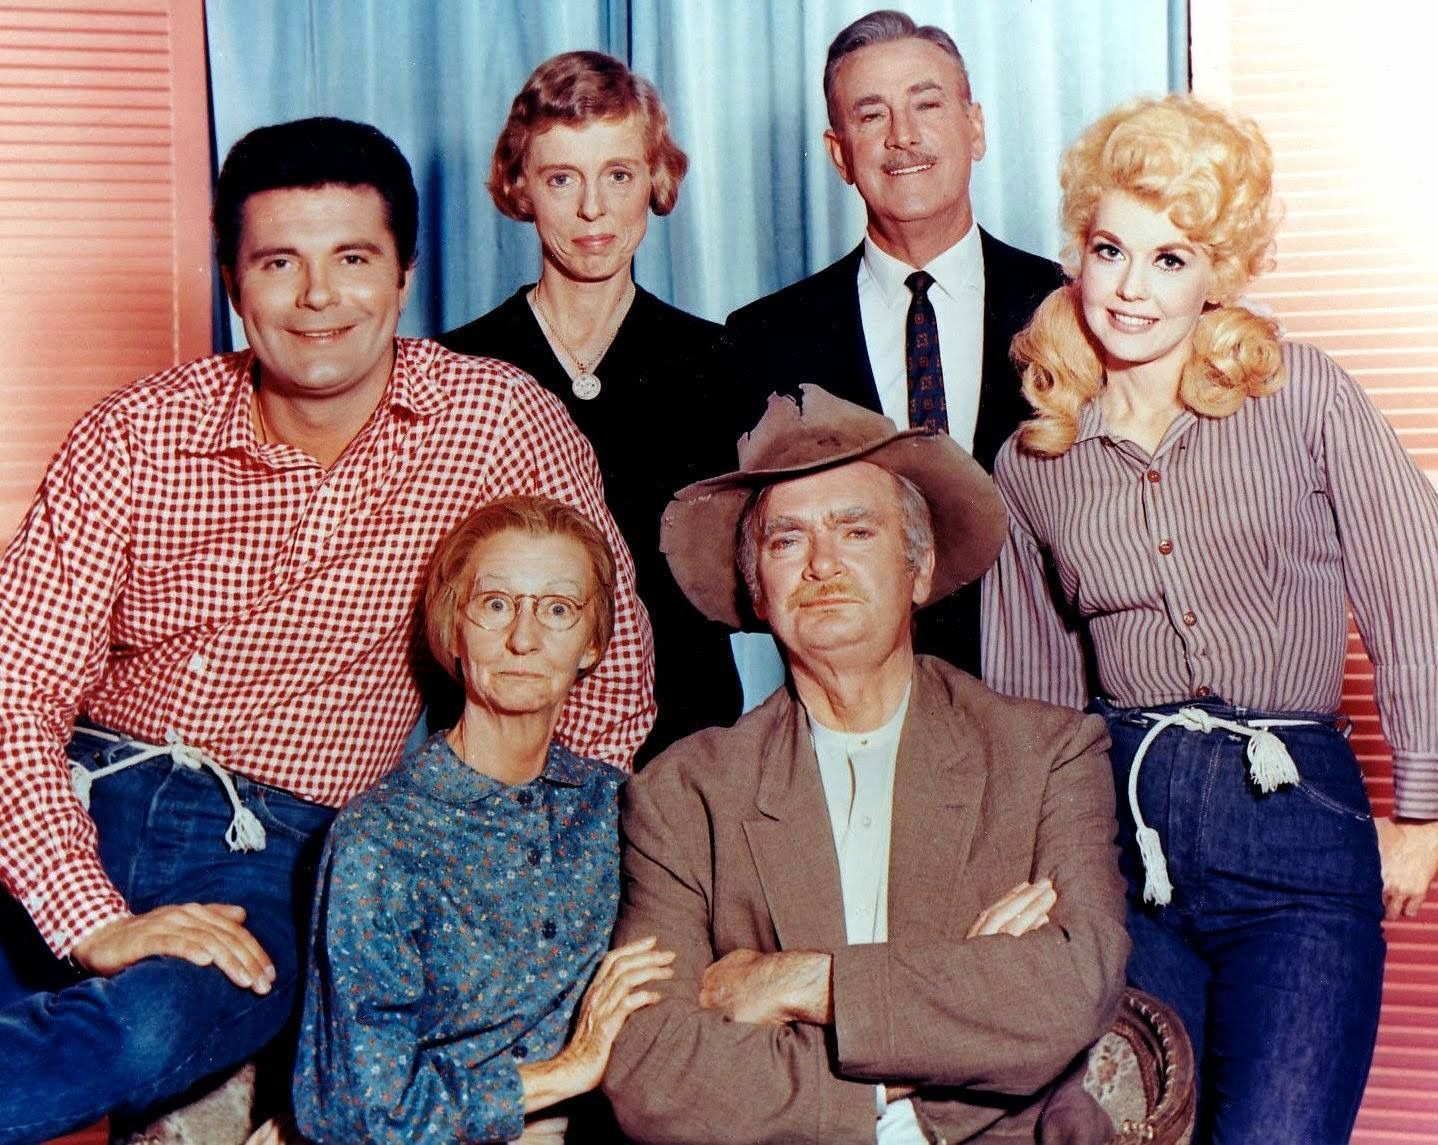 Jethro, Miss Jane, Mr Drysdale, Elly May, Granny, Jed Clampet